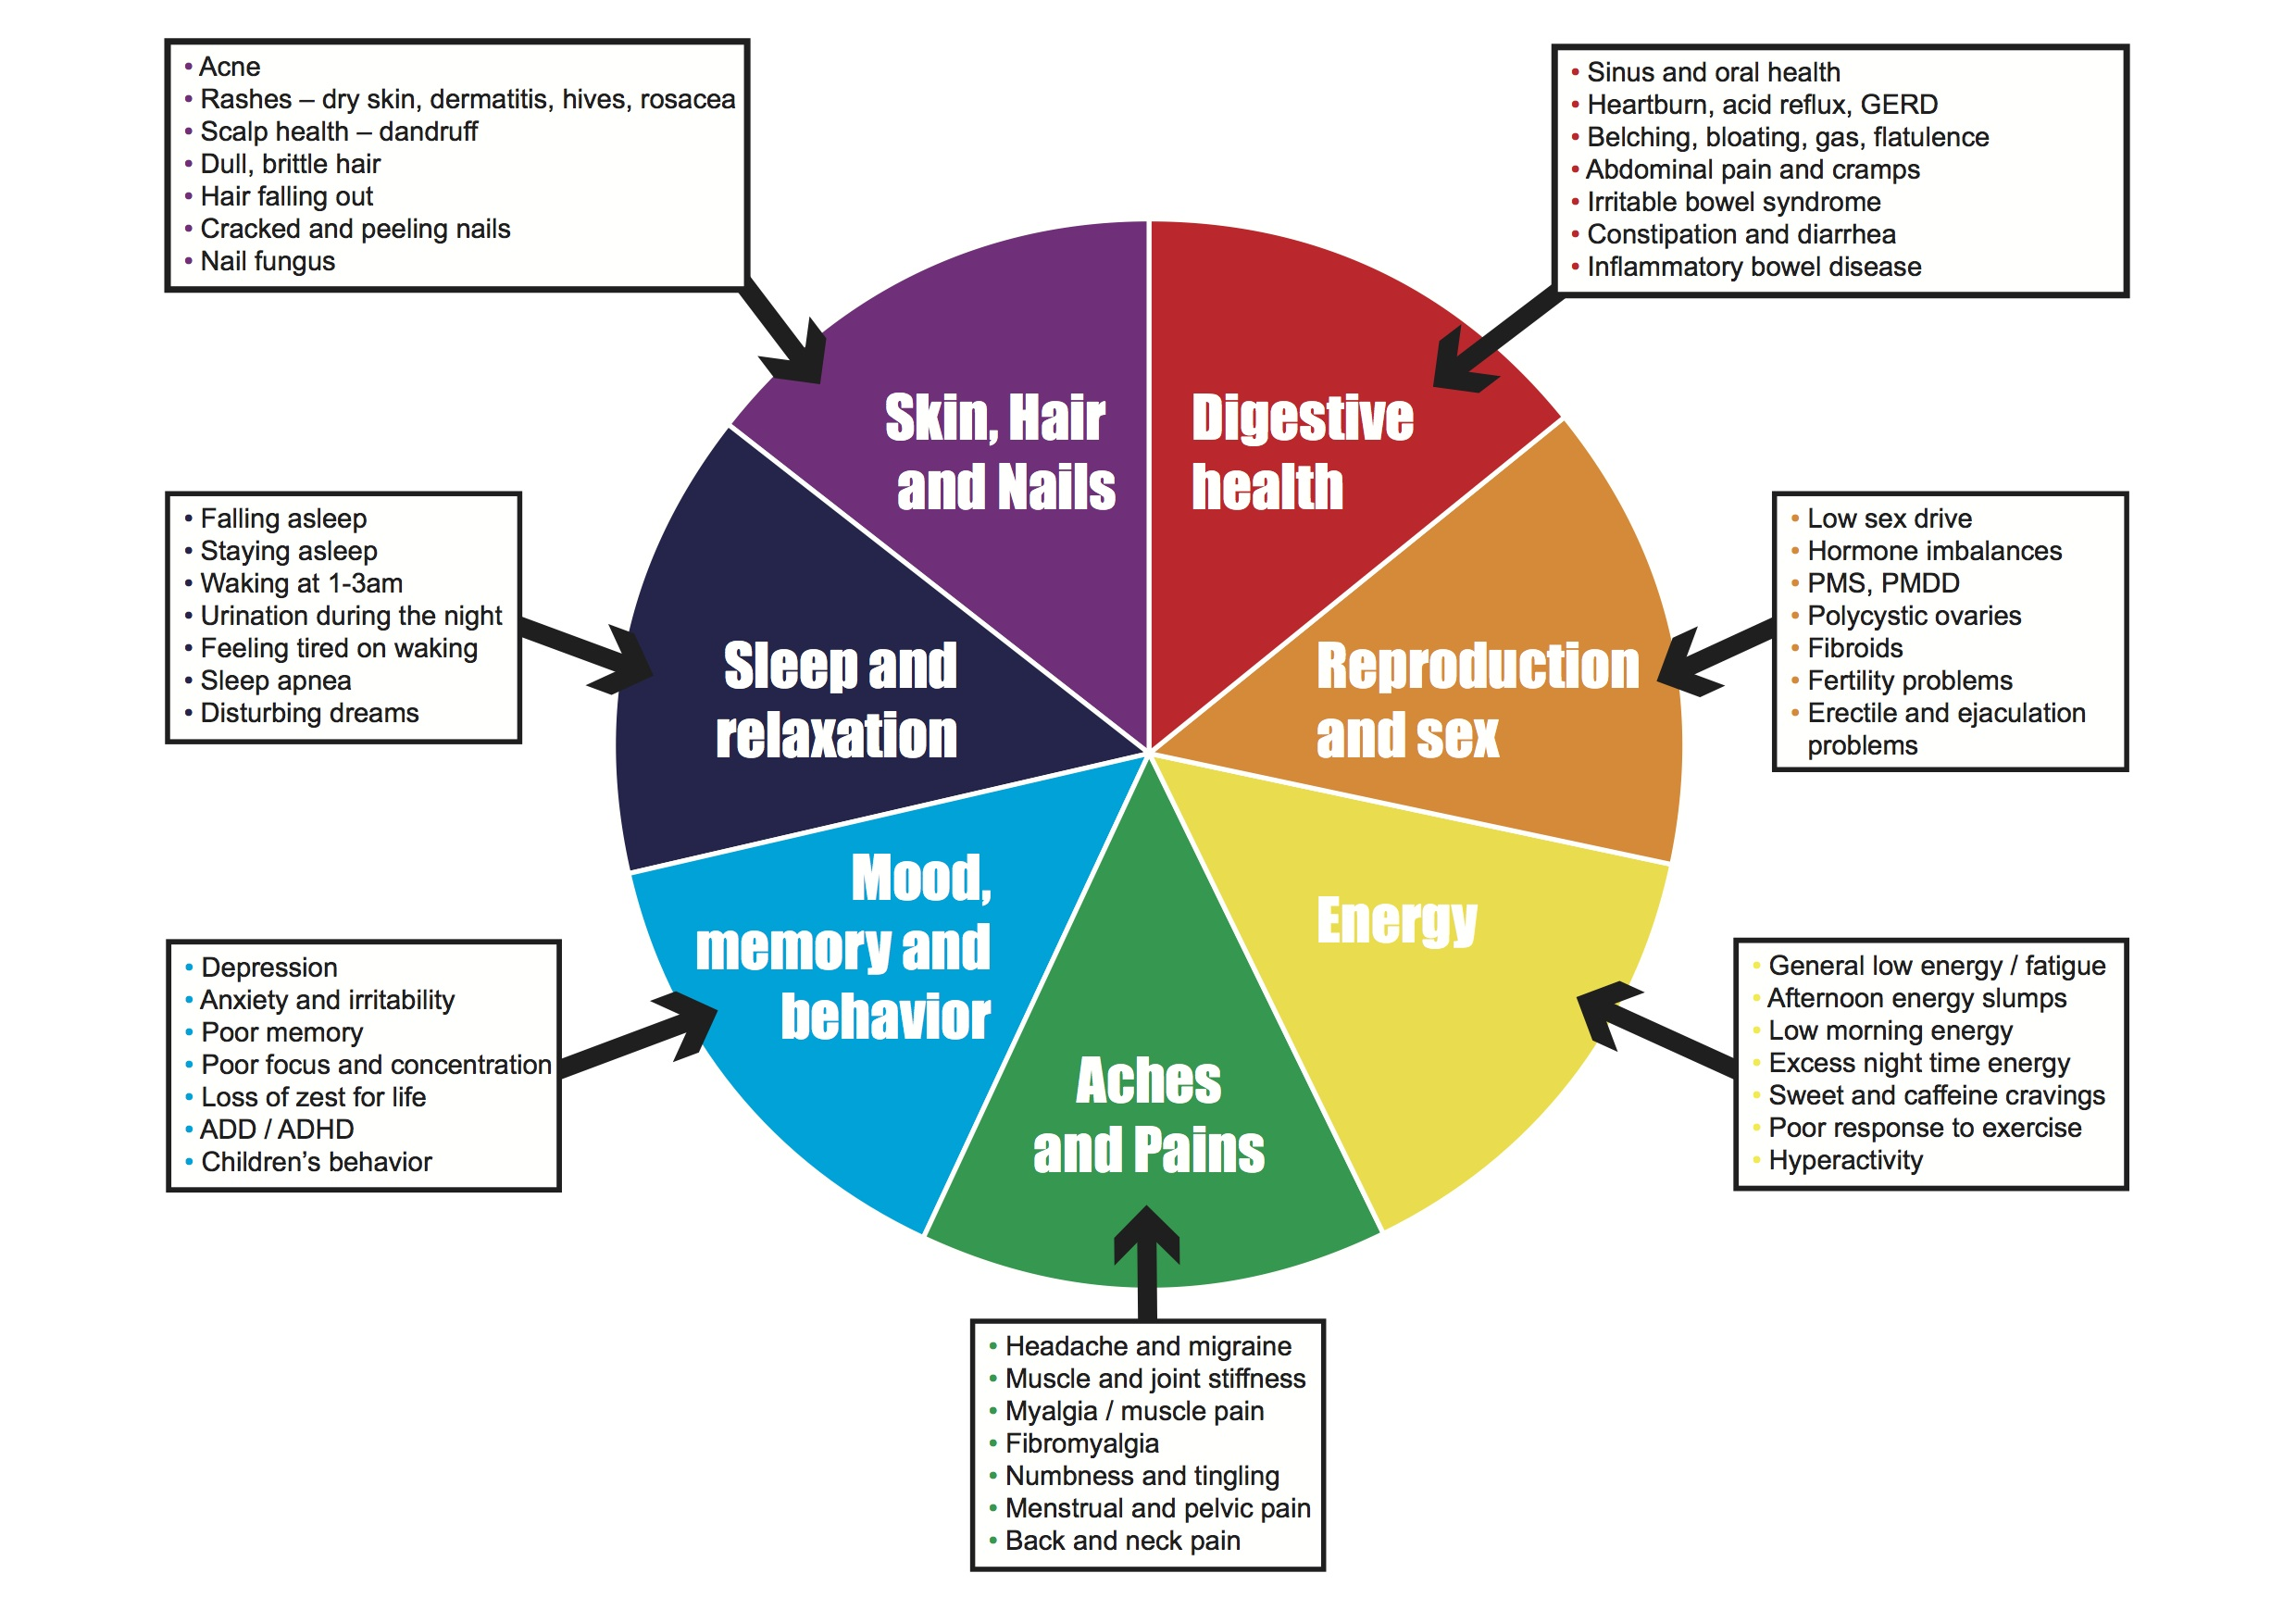 Seven Areas Of Health